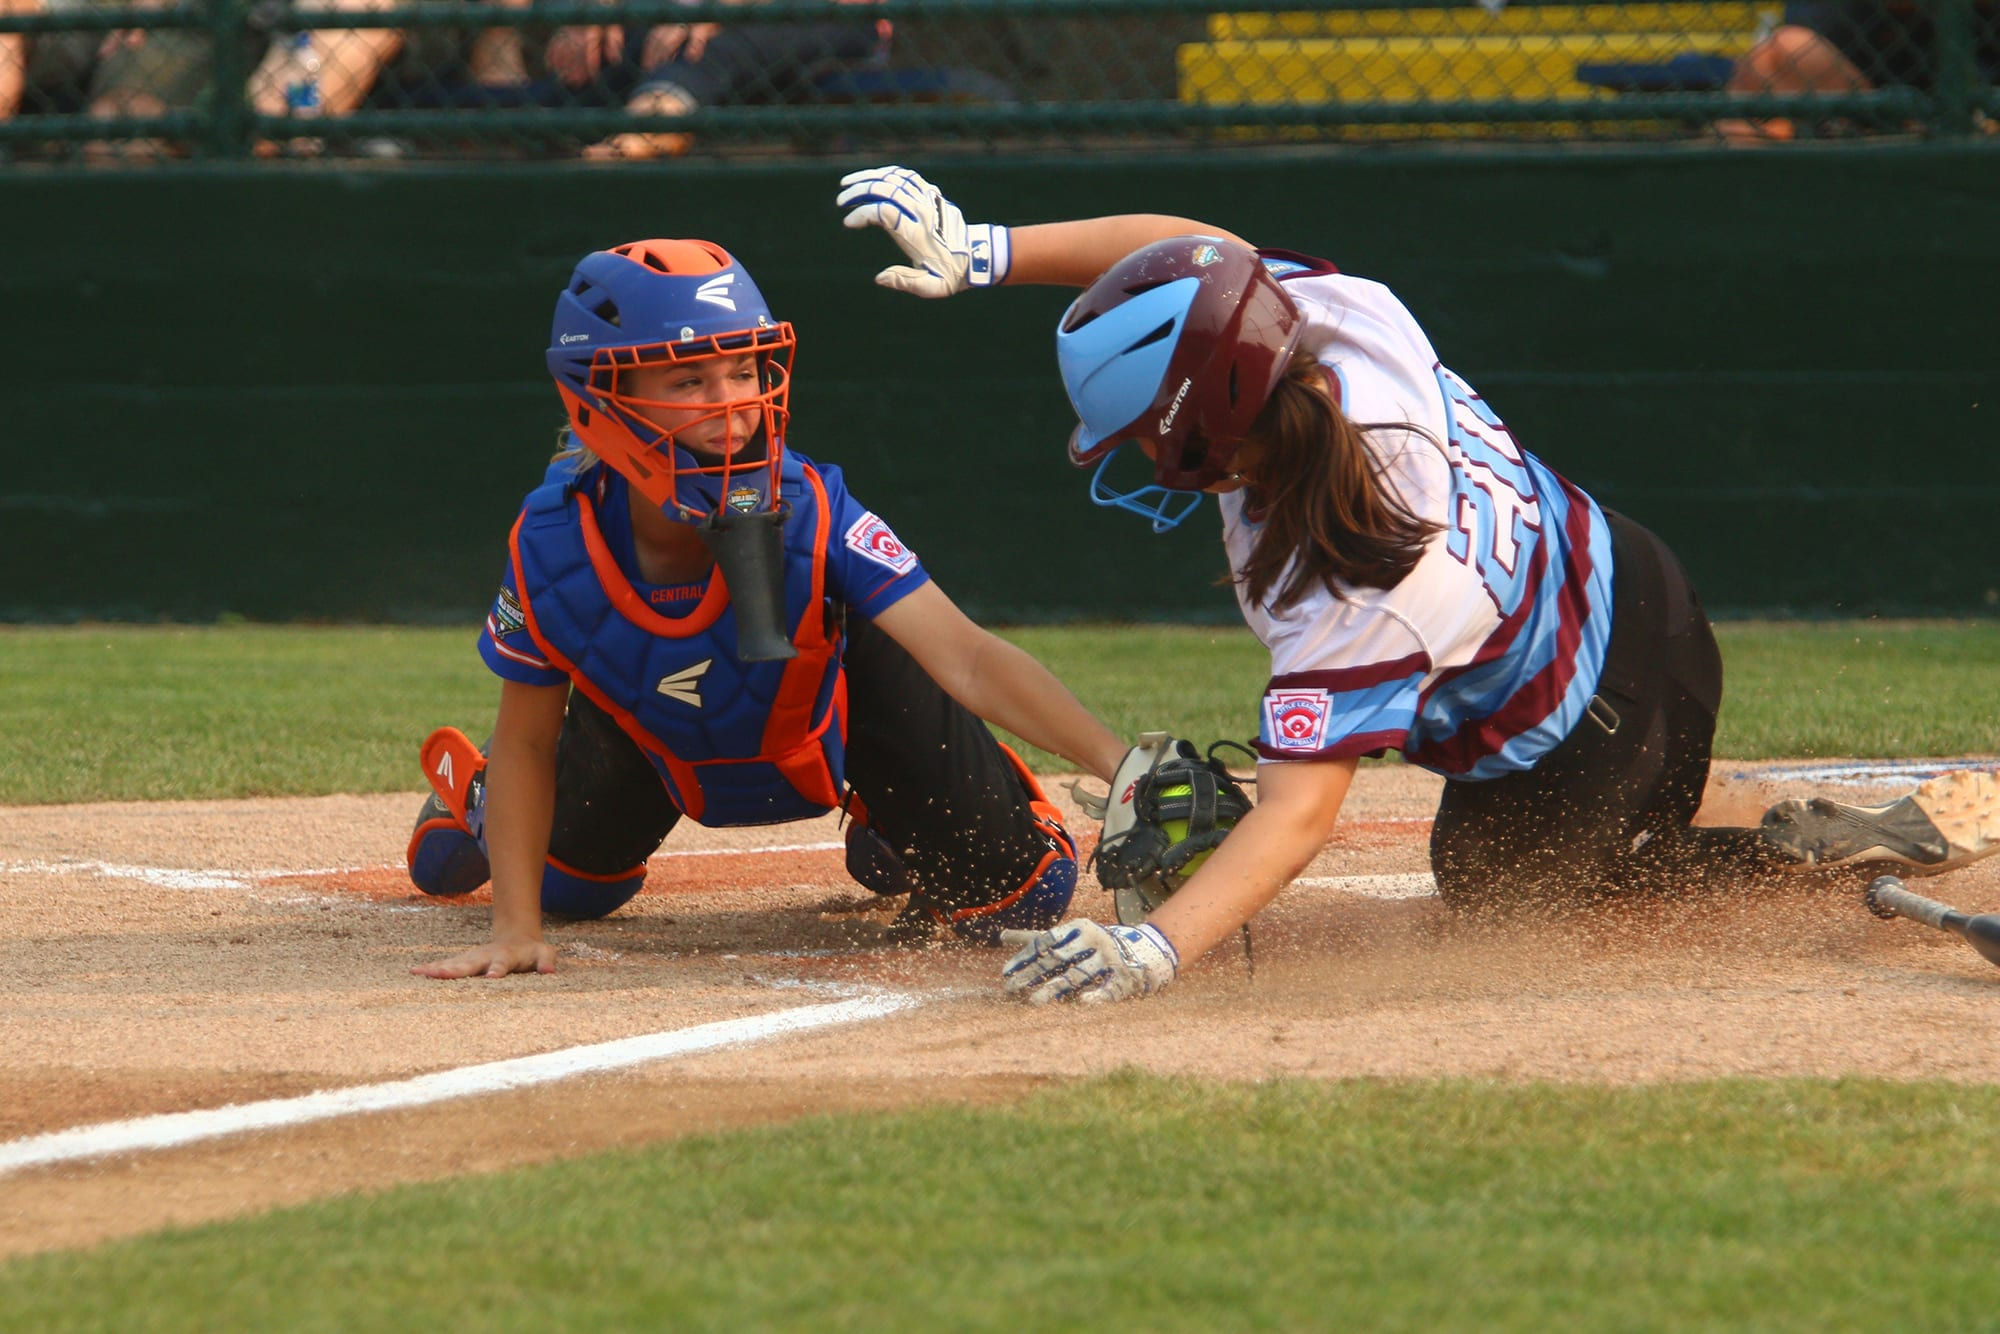 sb catcher tagging runner at home